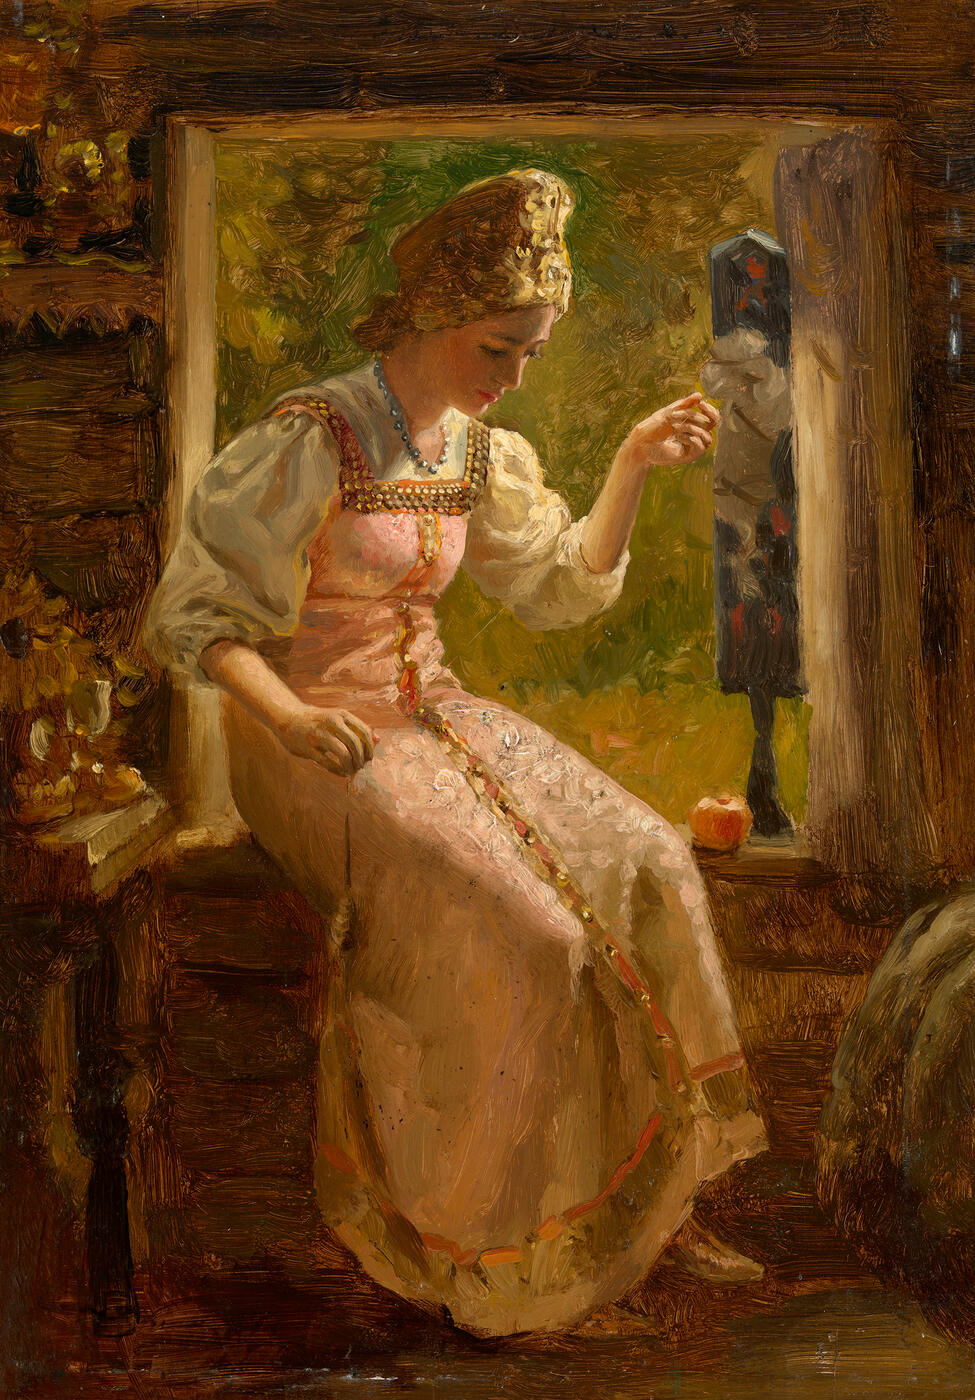 Young Woman Spinning Yarn by the Window